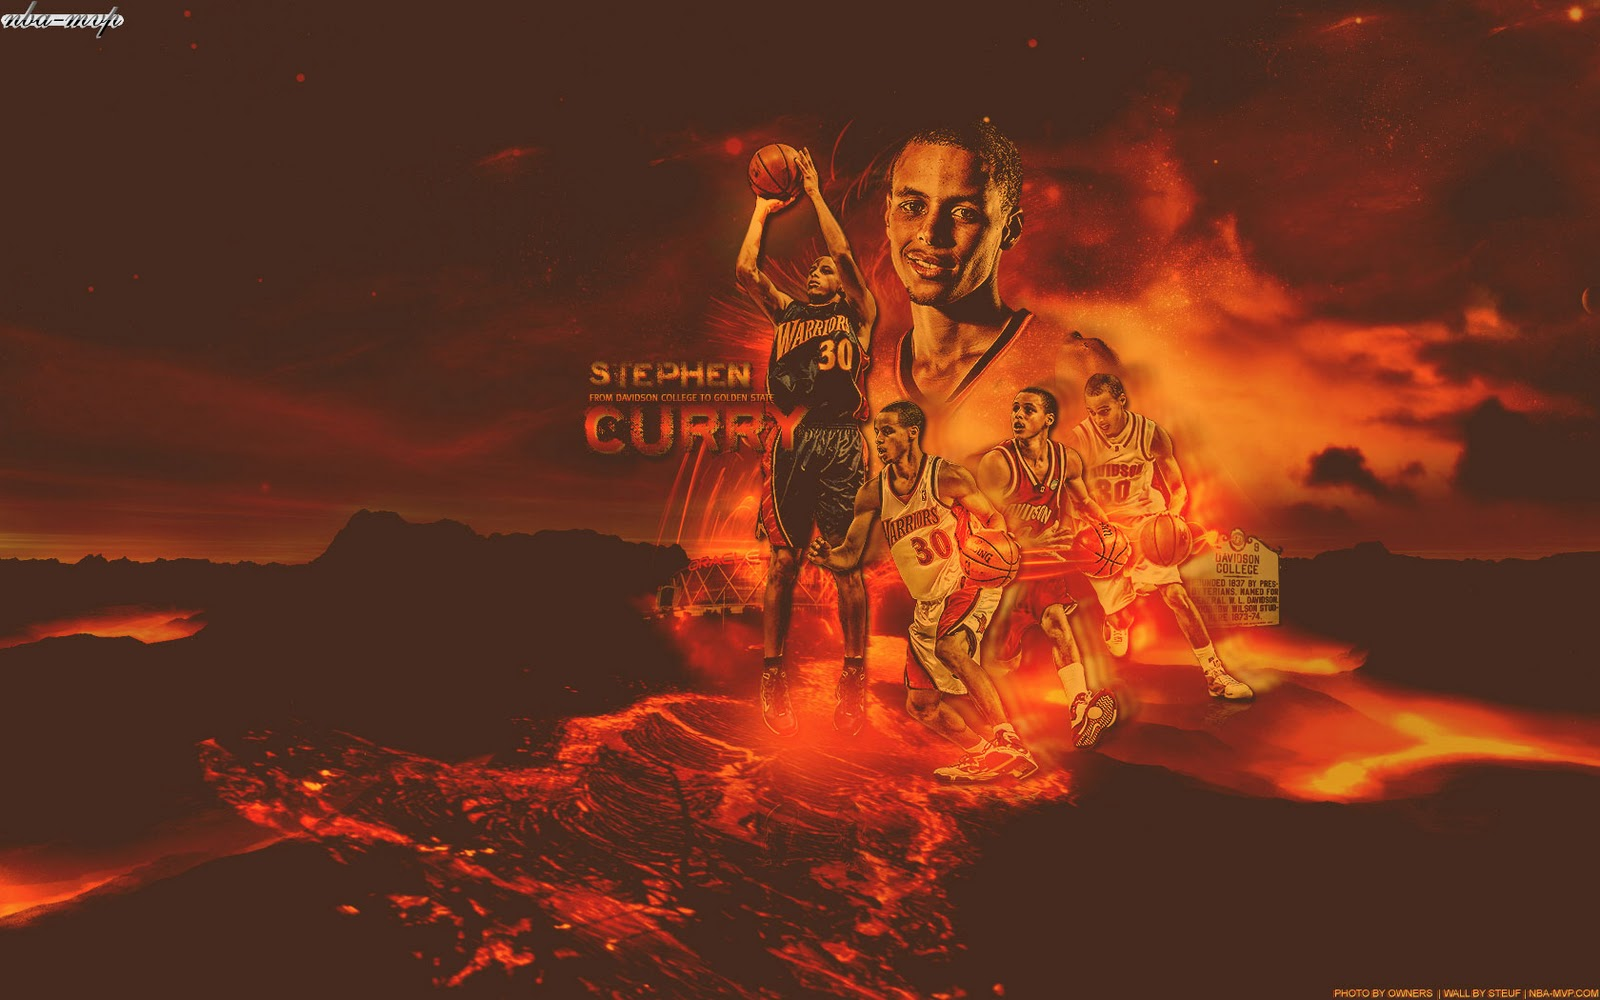 Stephen Curry Wallpapers NBA Wallpapers Basket Ball Wallpapers 1600x1000